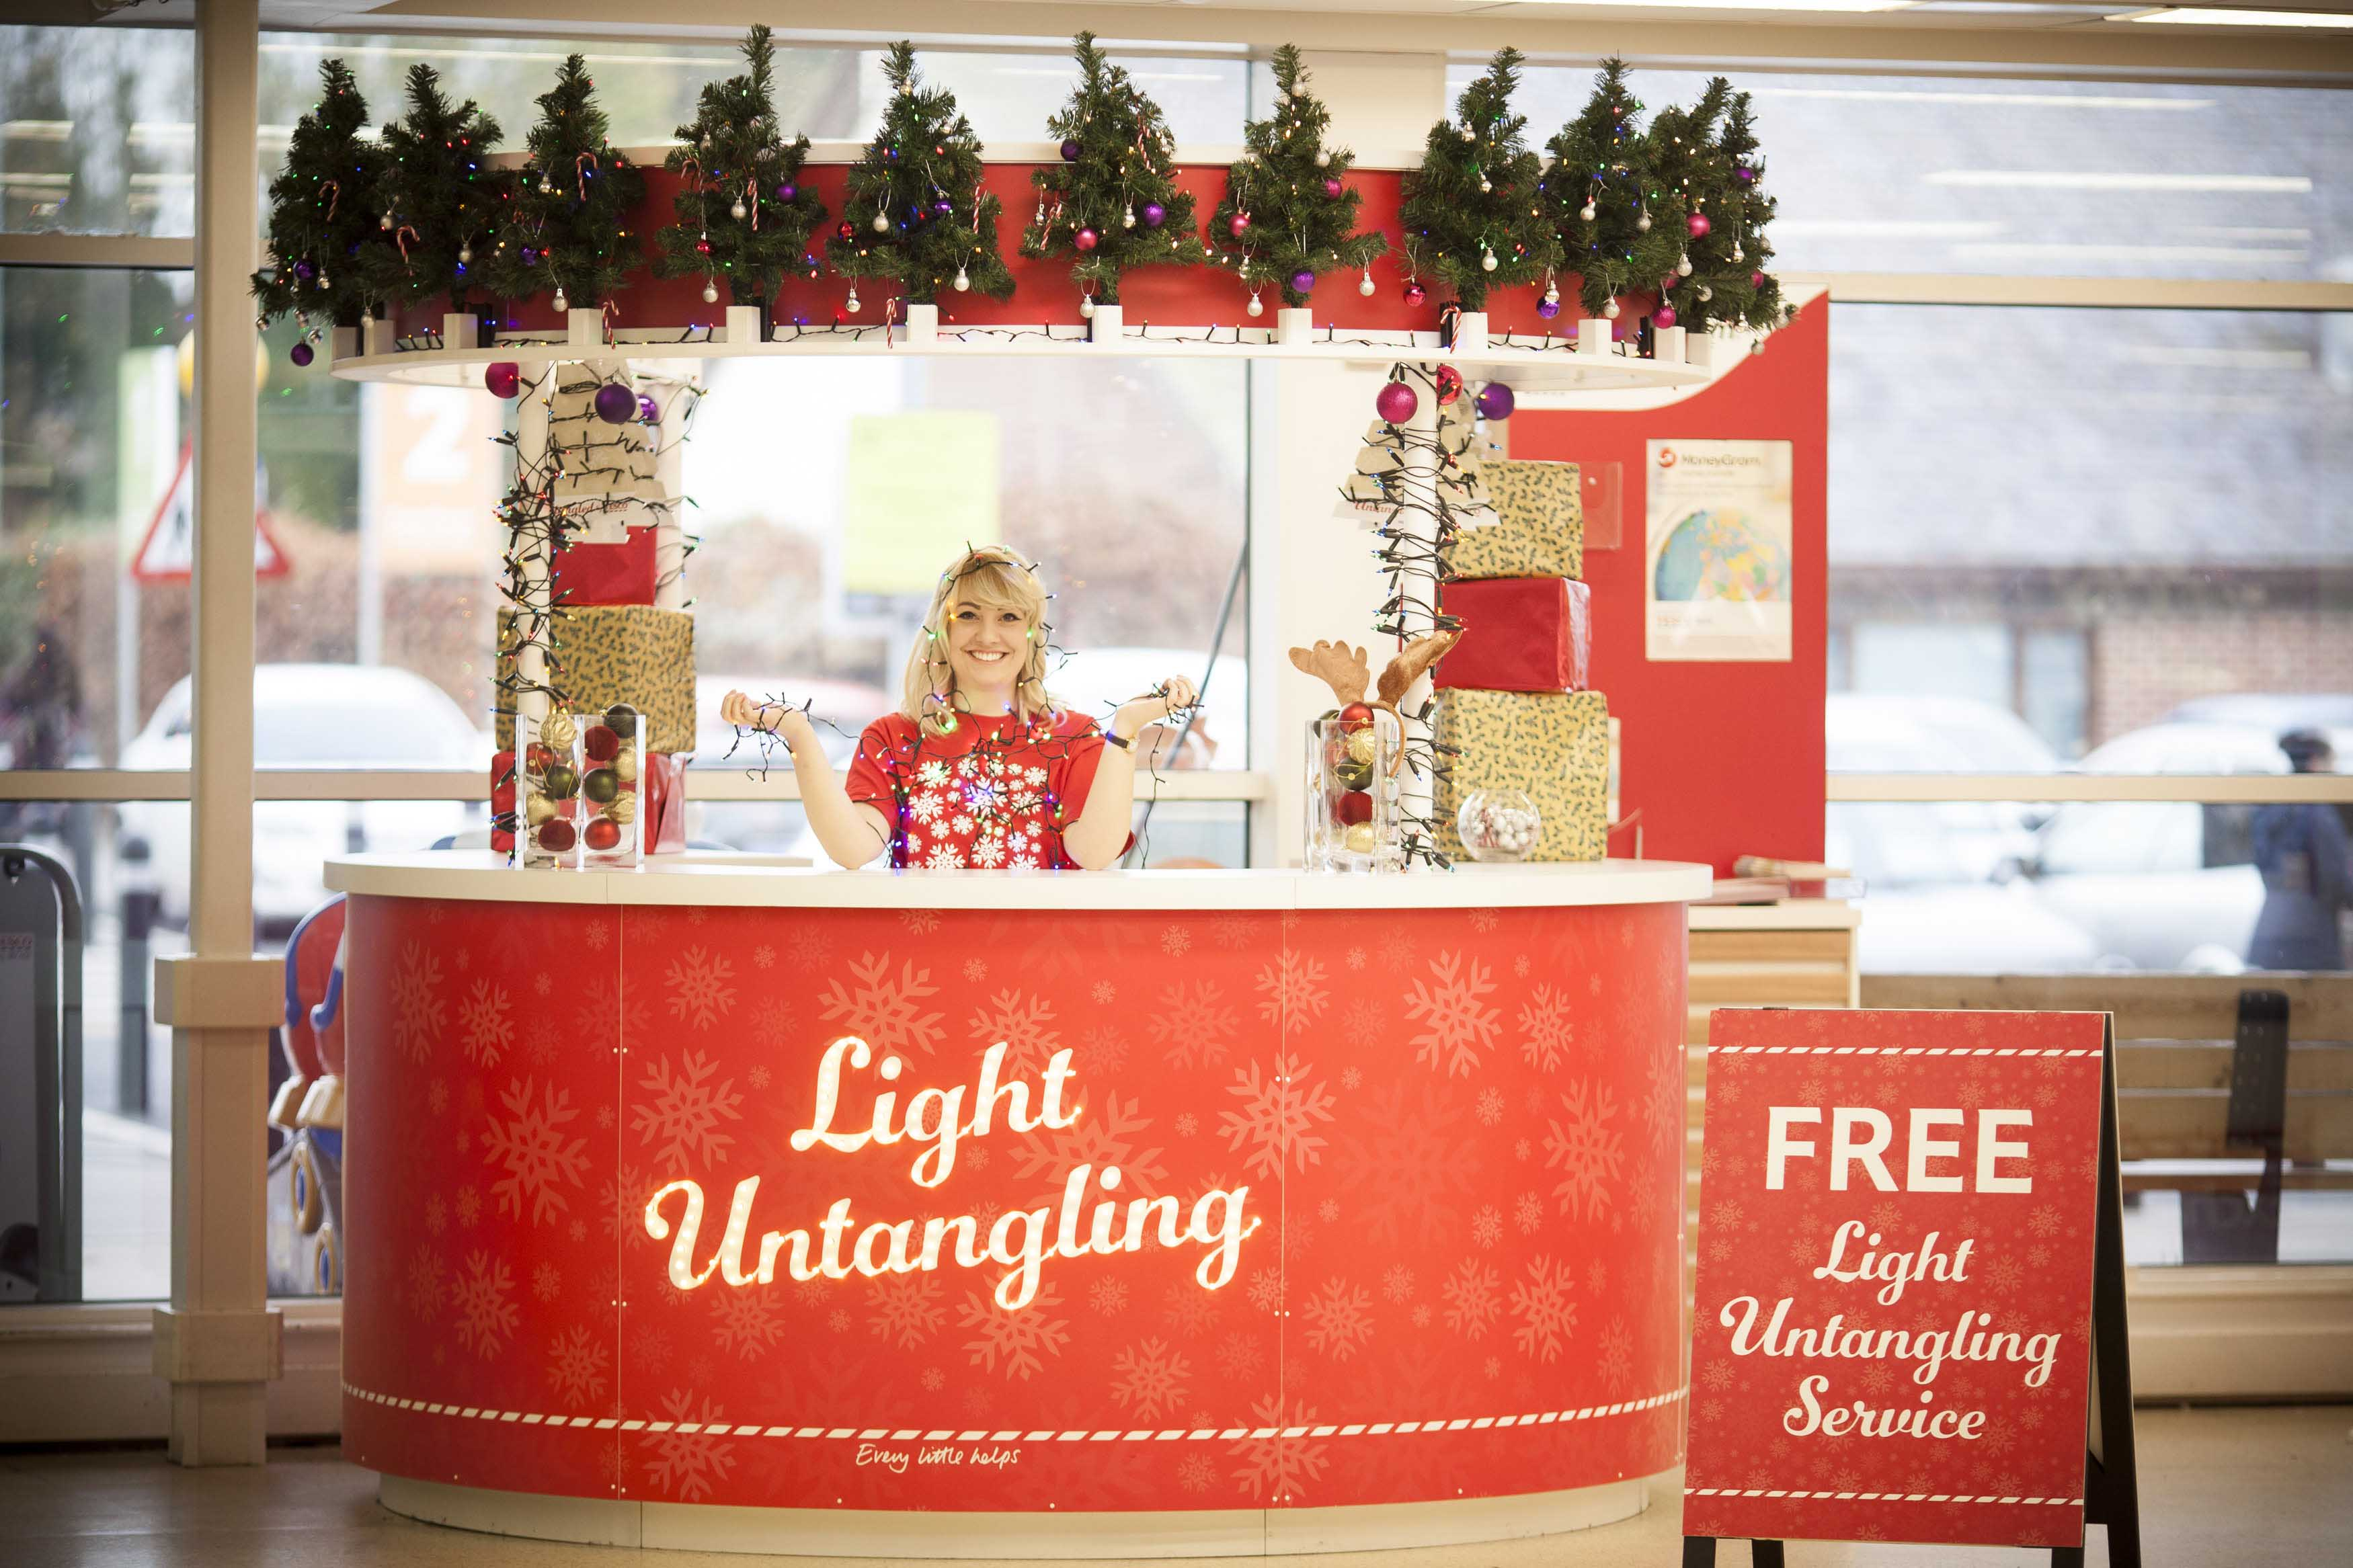 tesco extra store in wrexham north wales hires uks first ever christmas tree lights untangler